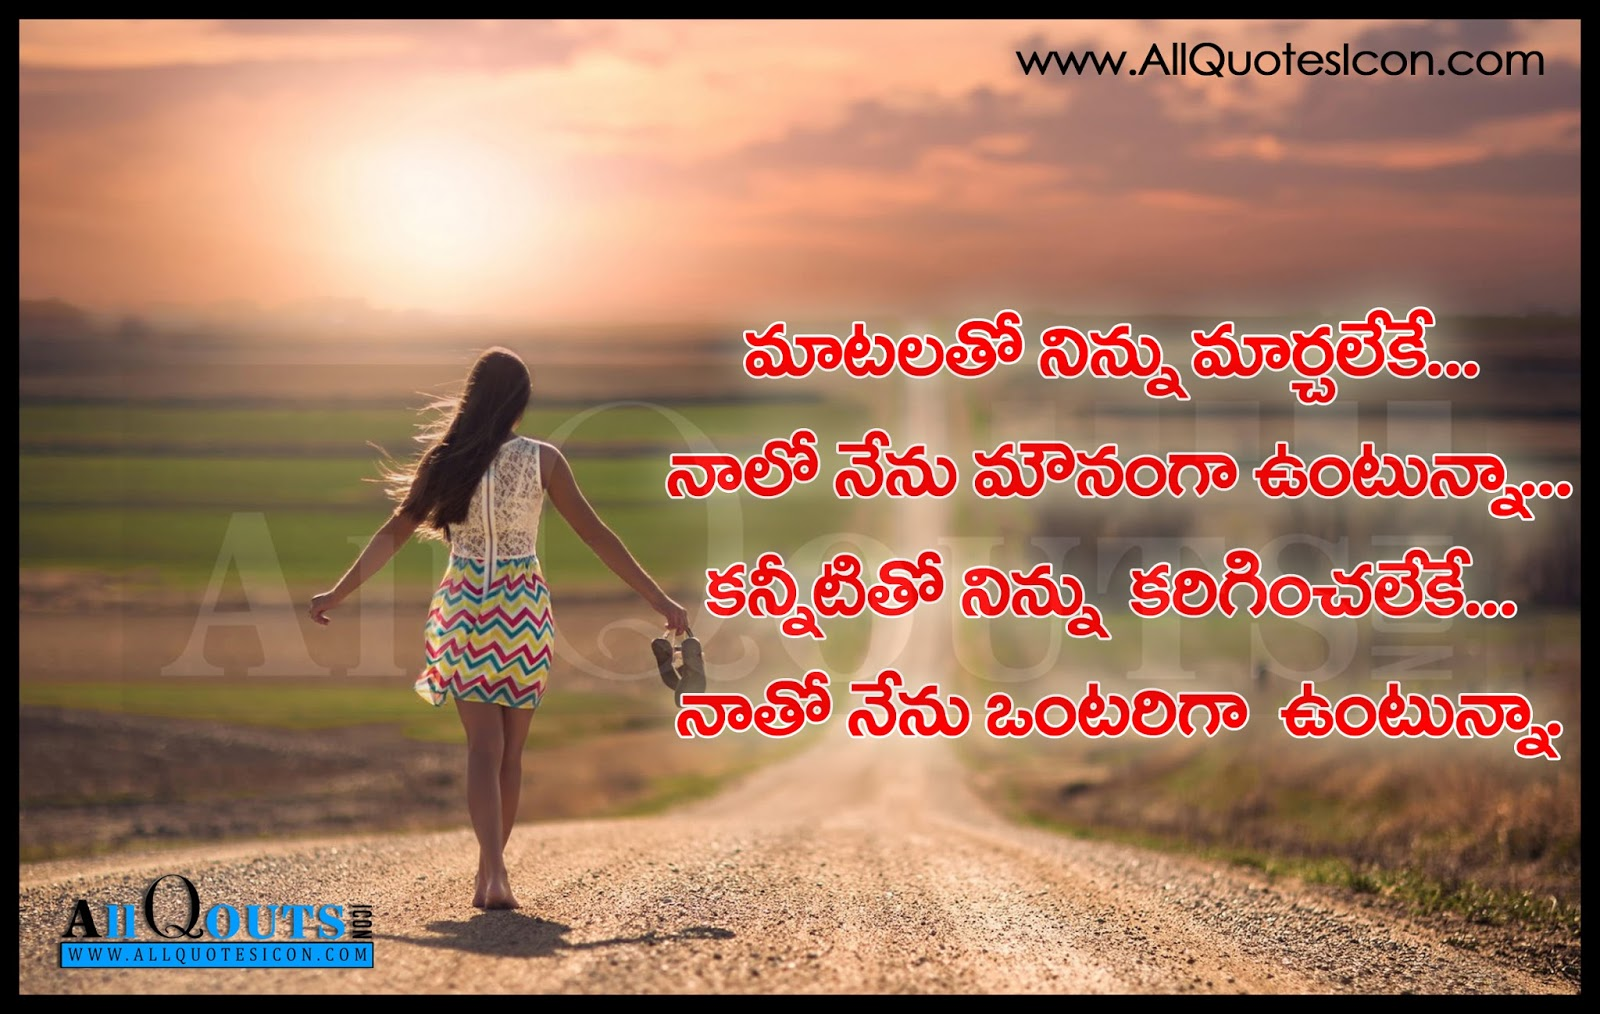 Best Love Feelings And Telugu Quotes For Him Wwwallquotesiconcom